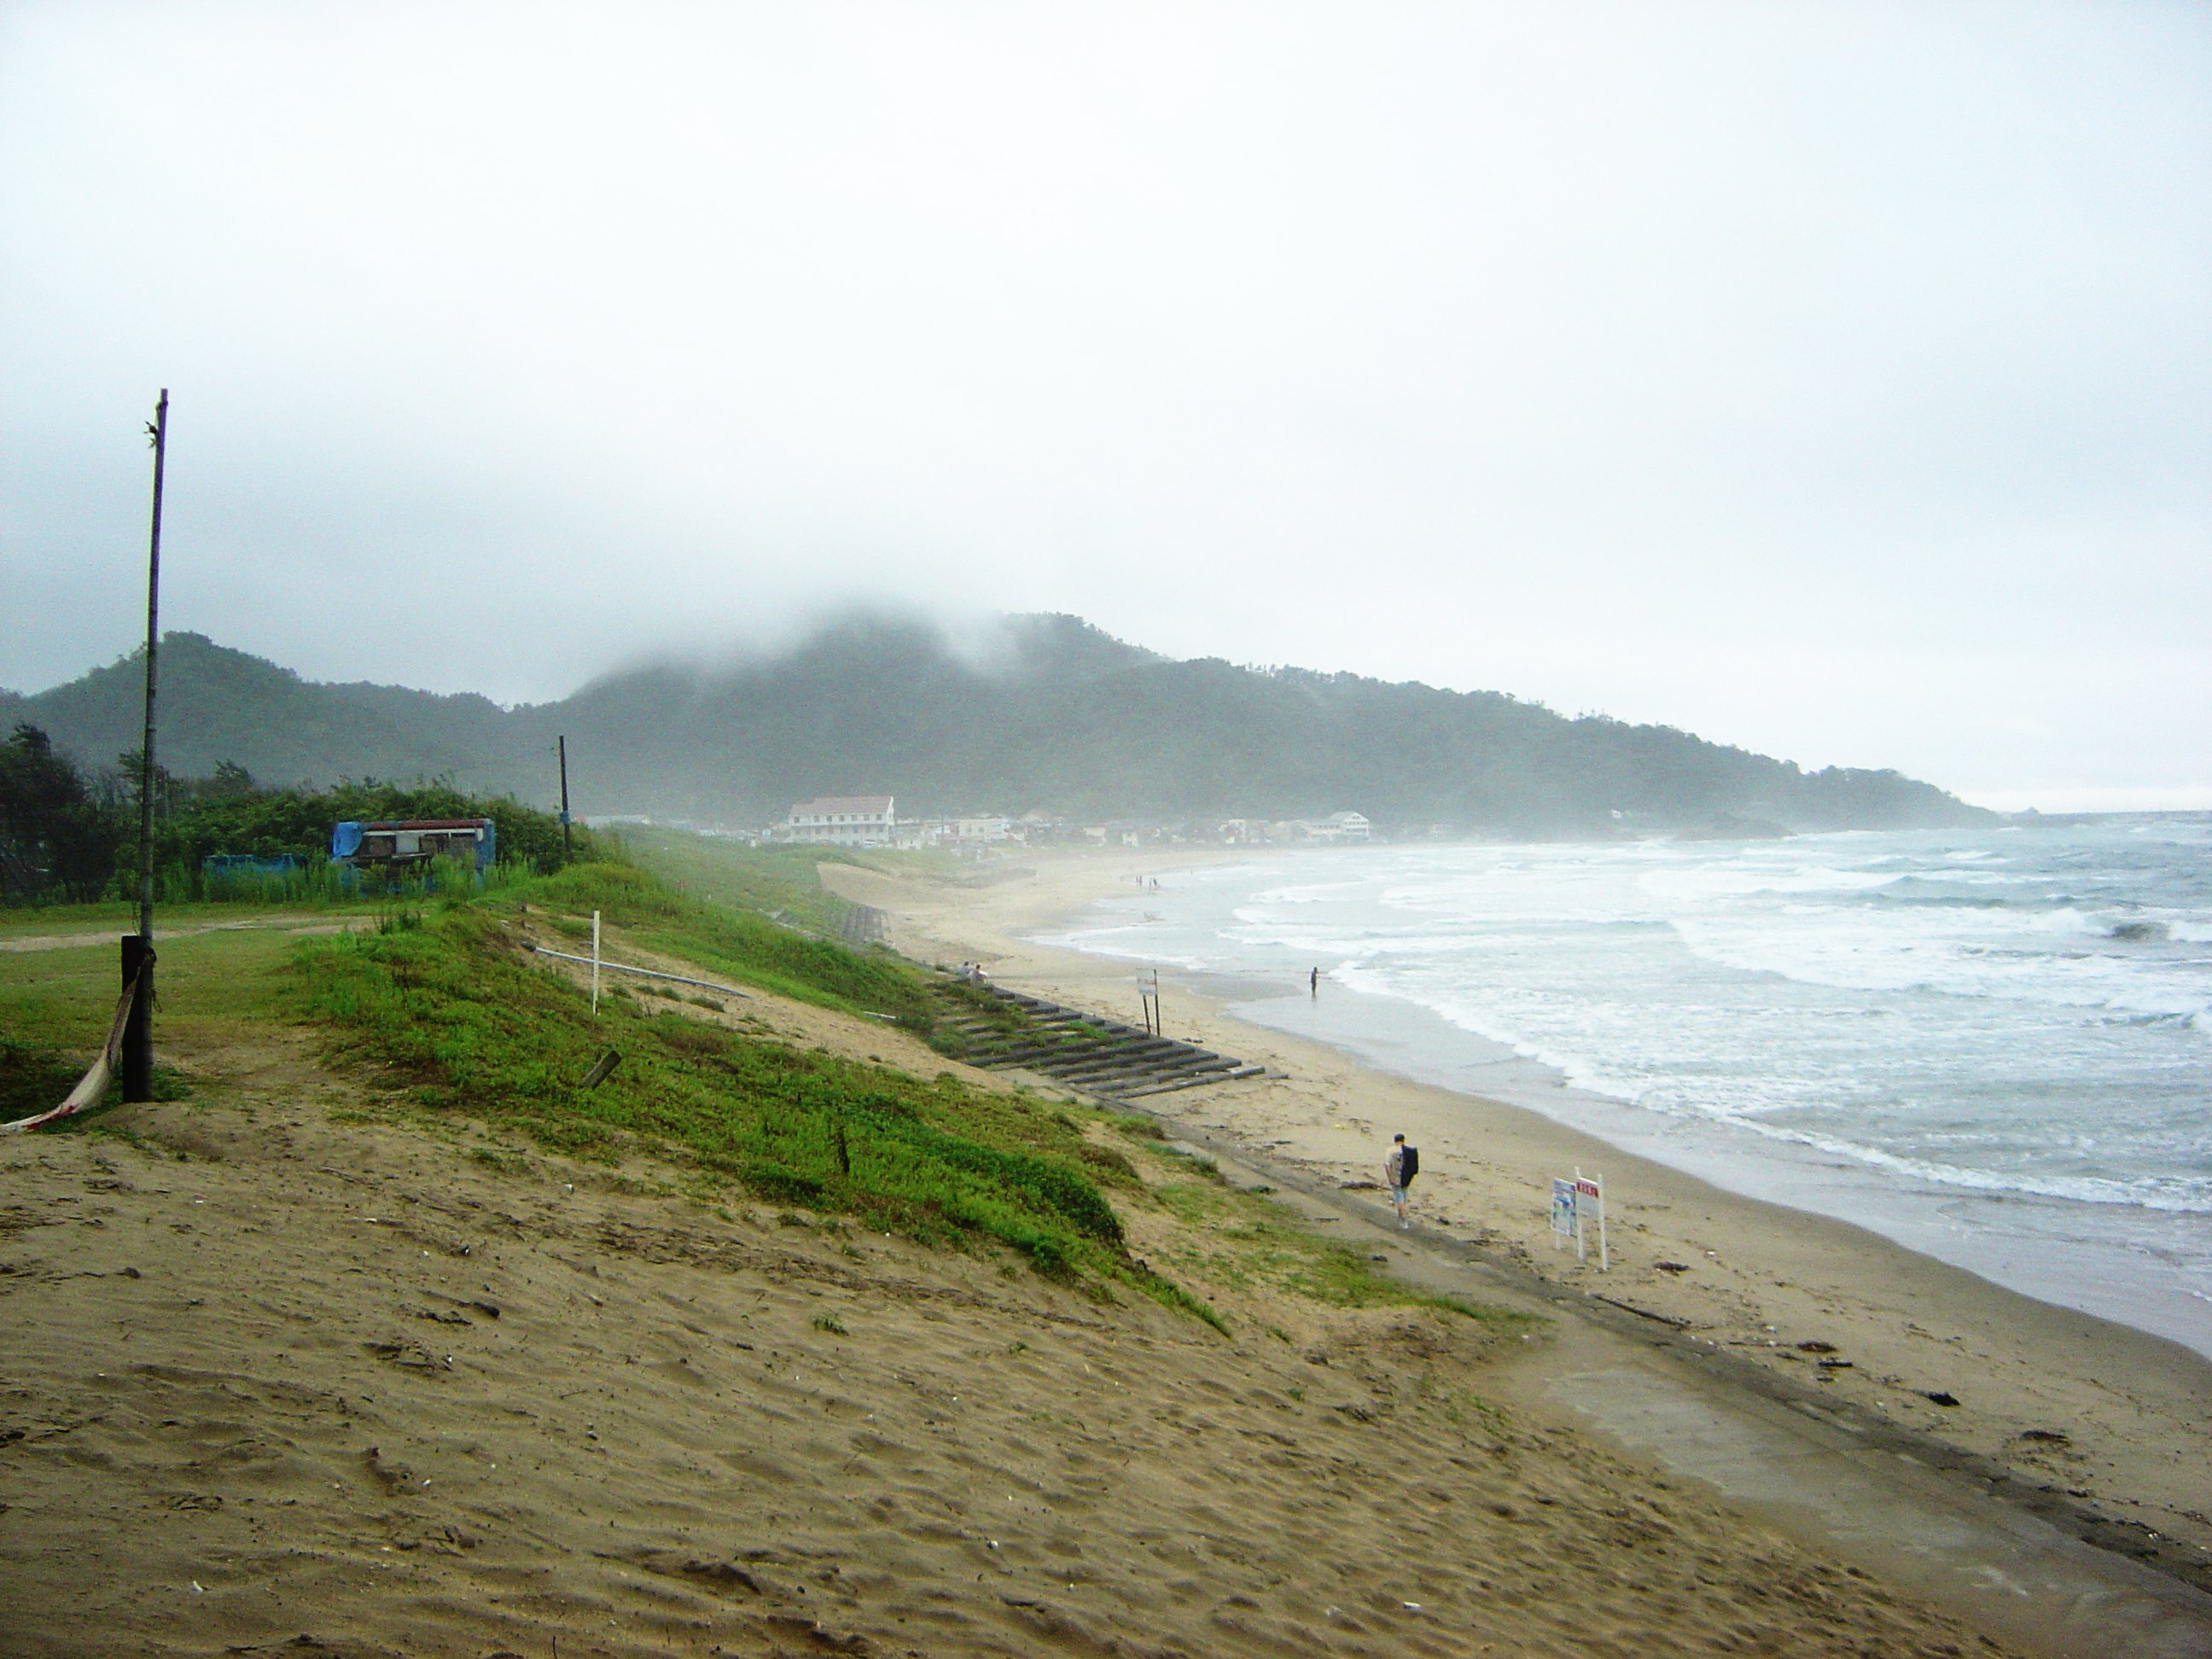 Tottori Japan  city images : Japan Tottori Iwami post typhoon DSC01735 Wikipedia, the ...